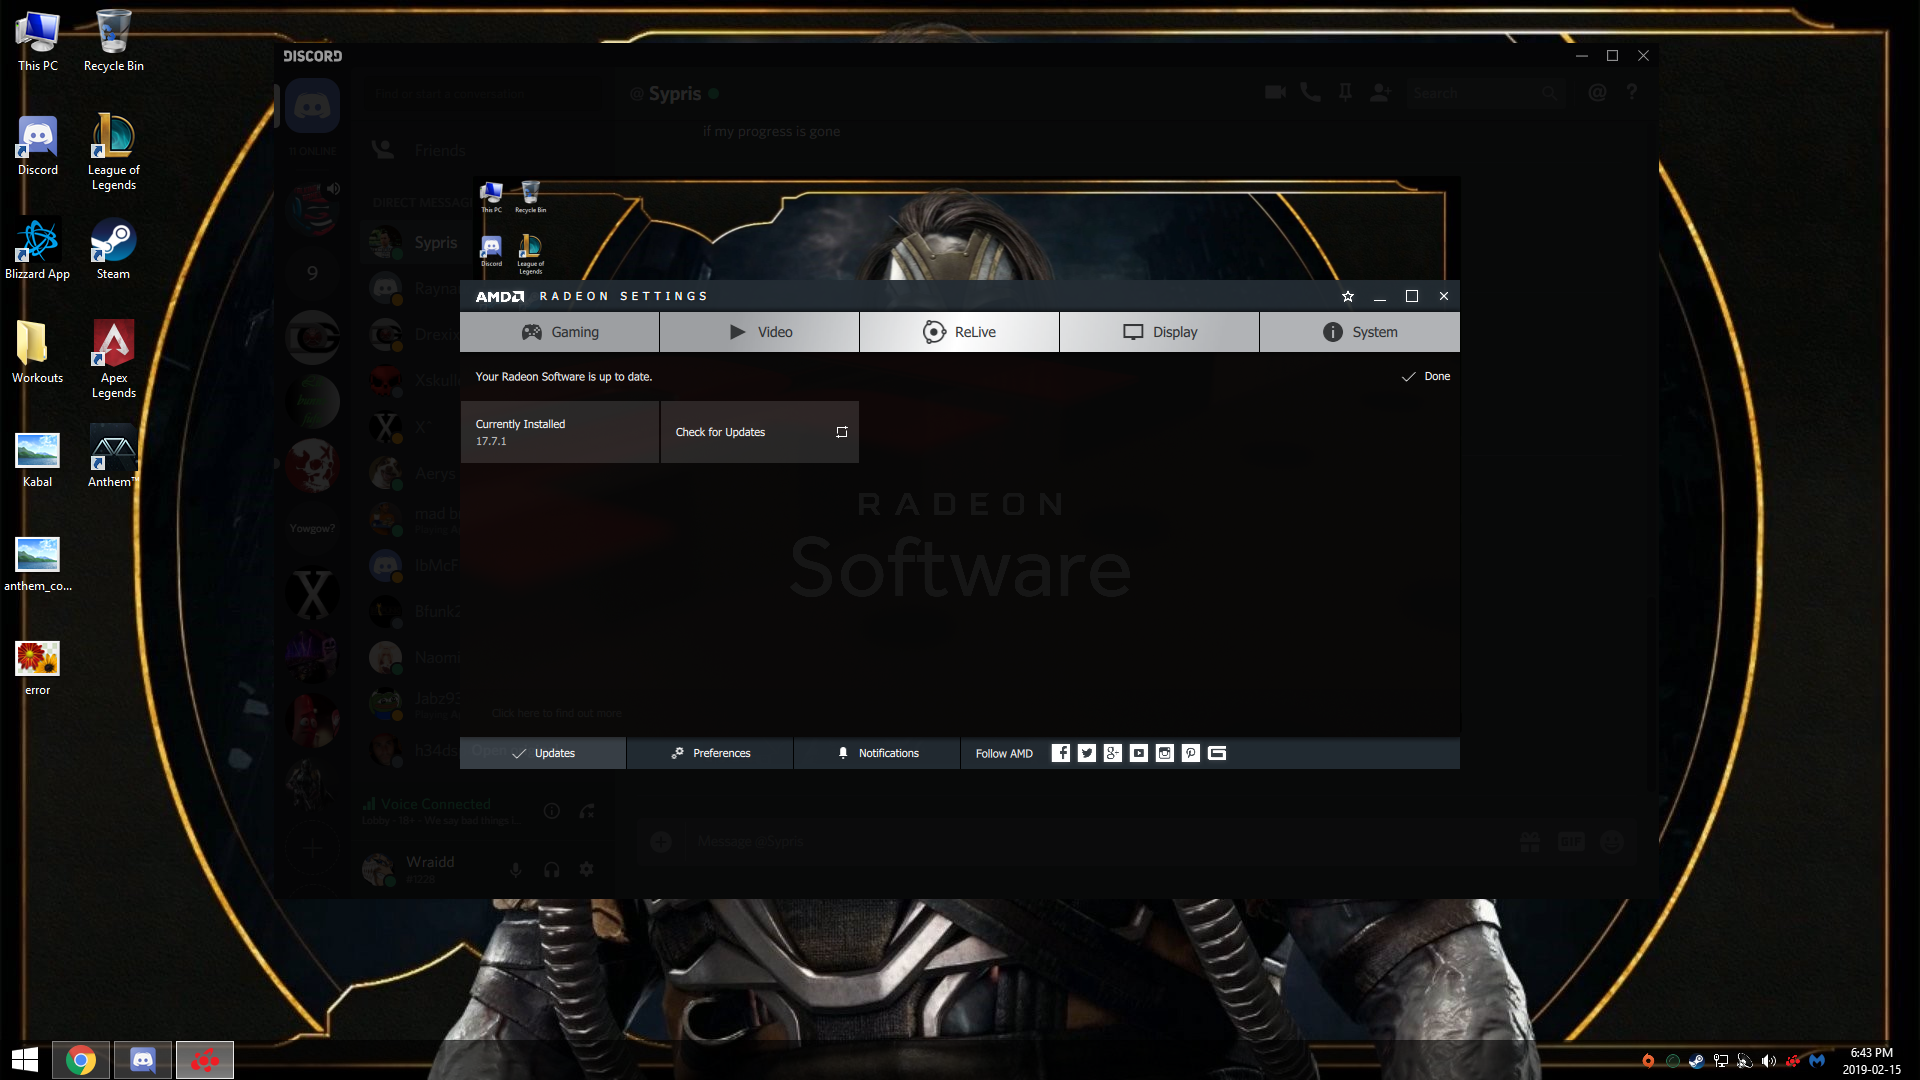 Anthem wont boot says update video driver - Answer HQ